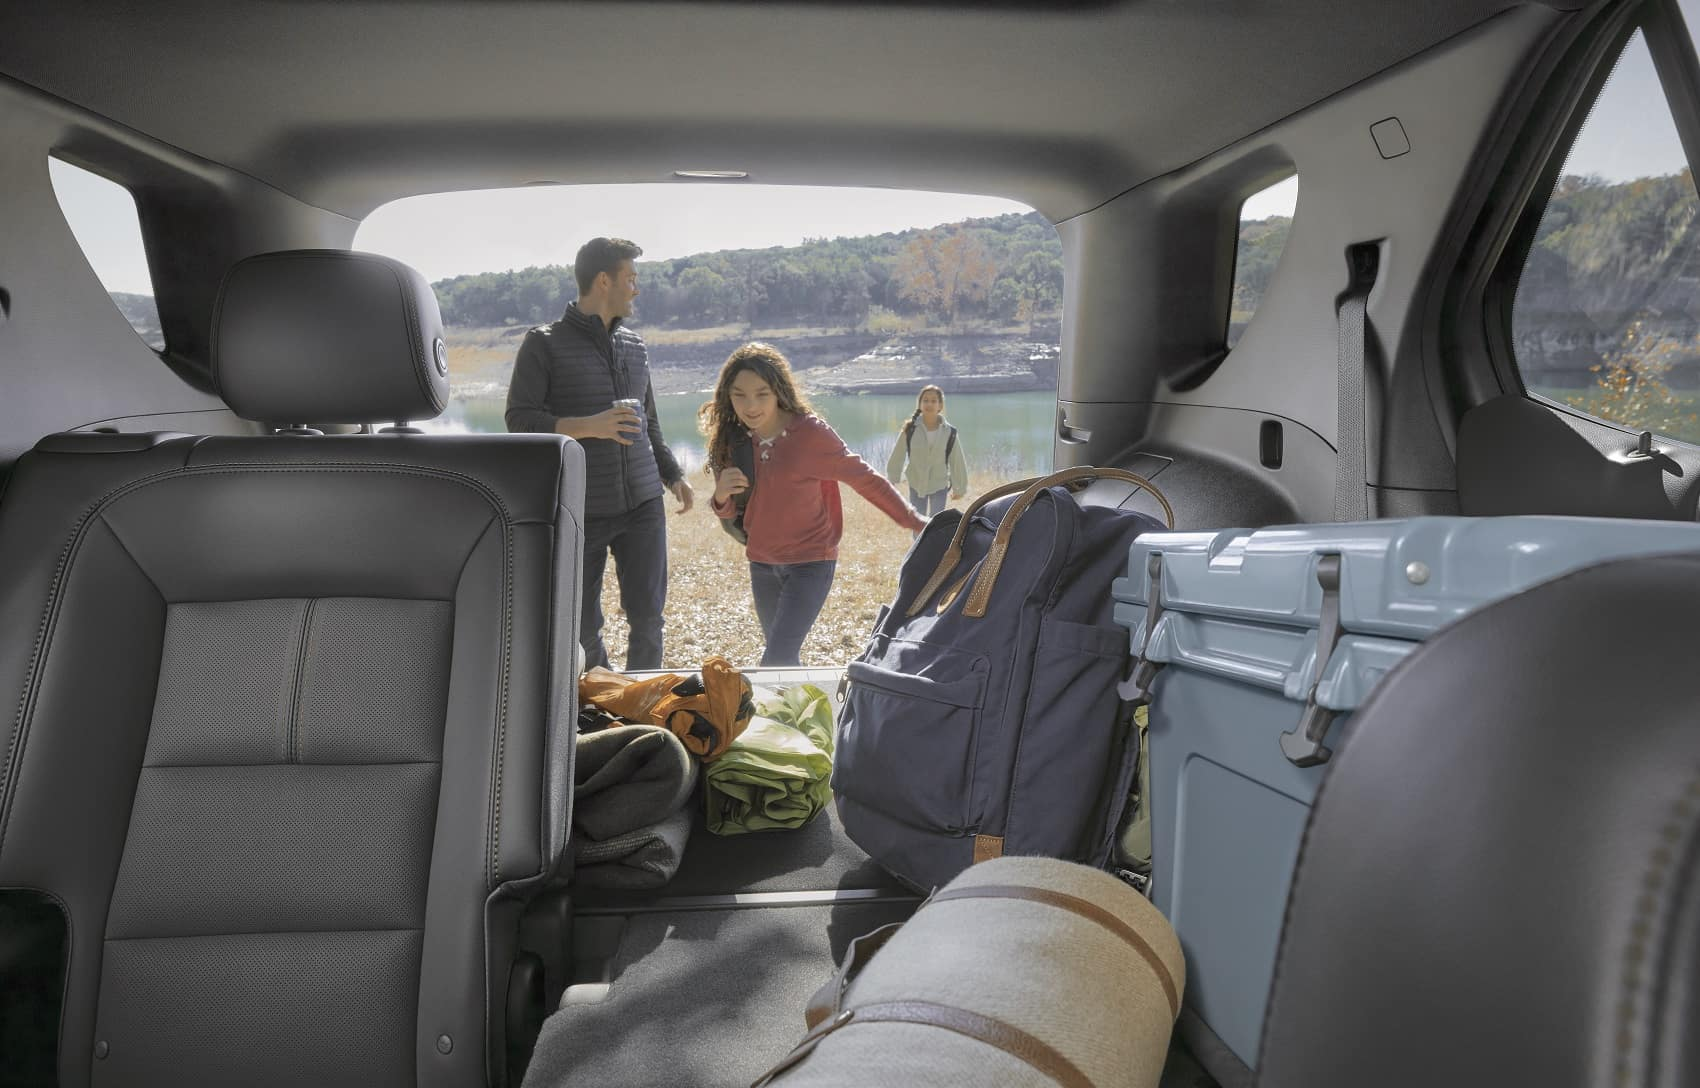 2022 Chevy Equinox cabin view from front seat with tailgate open